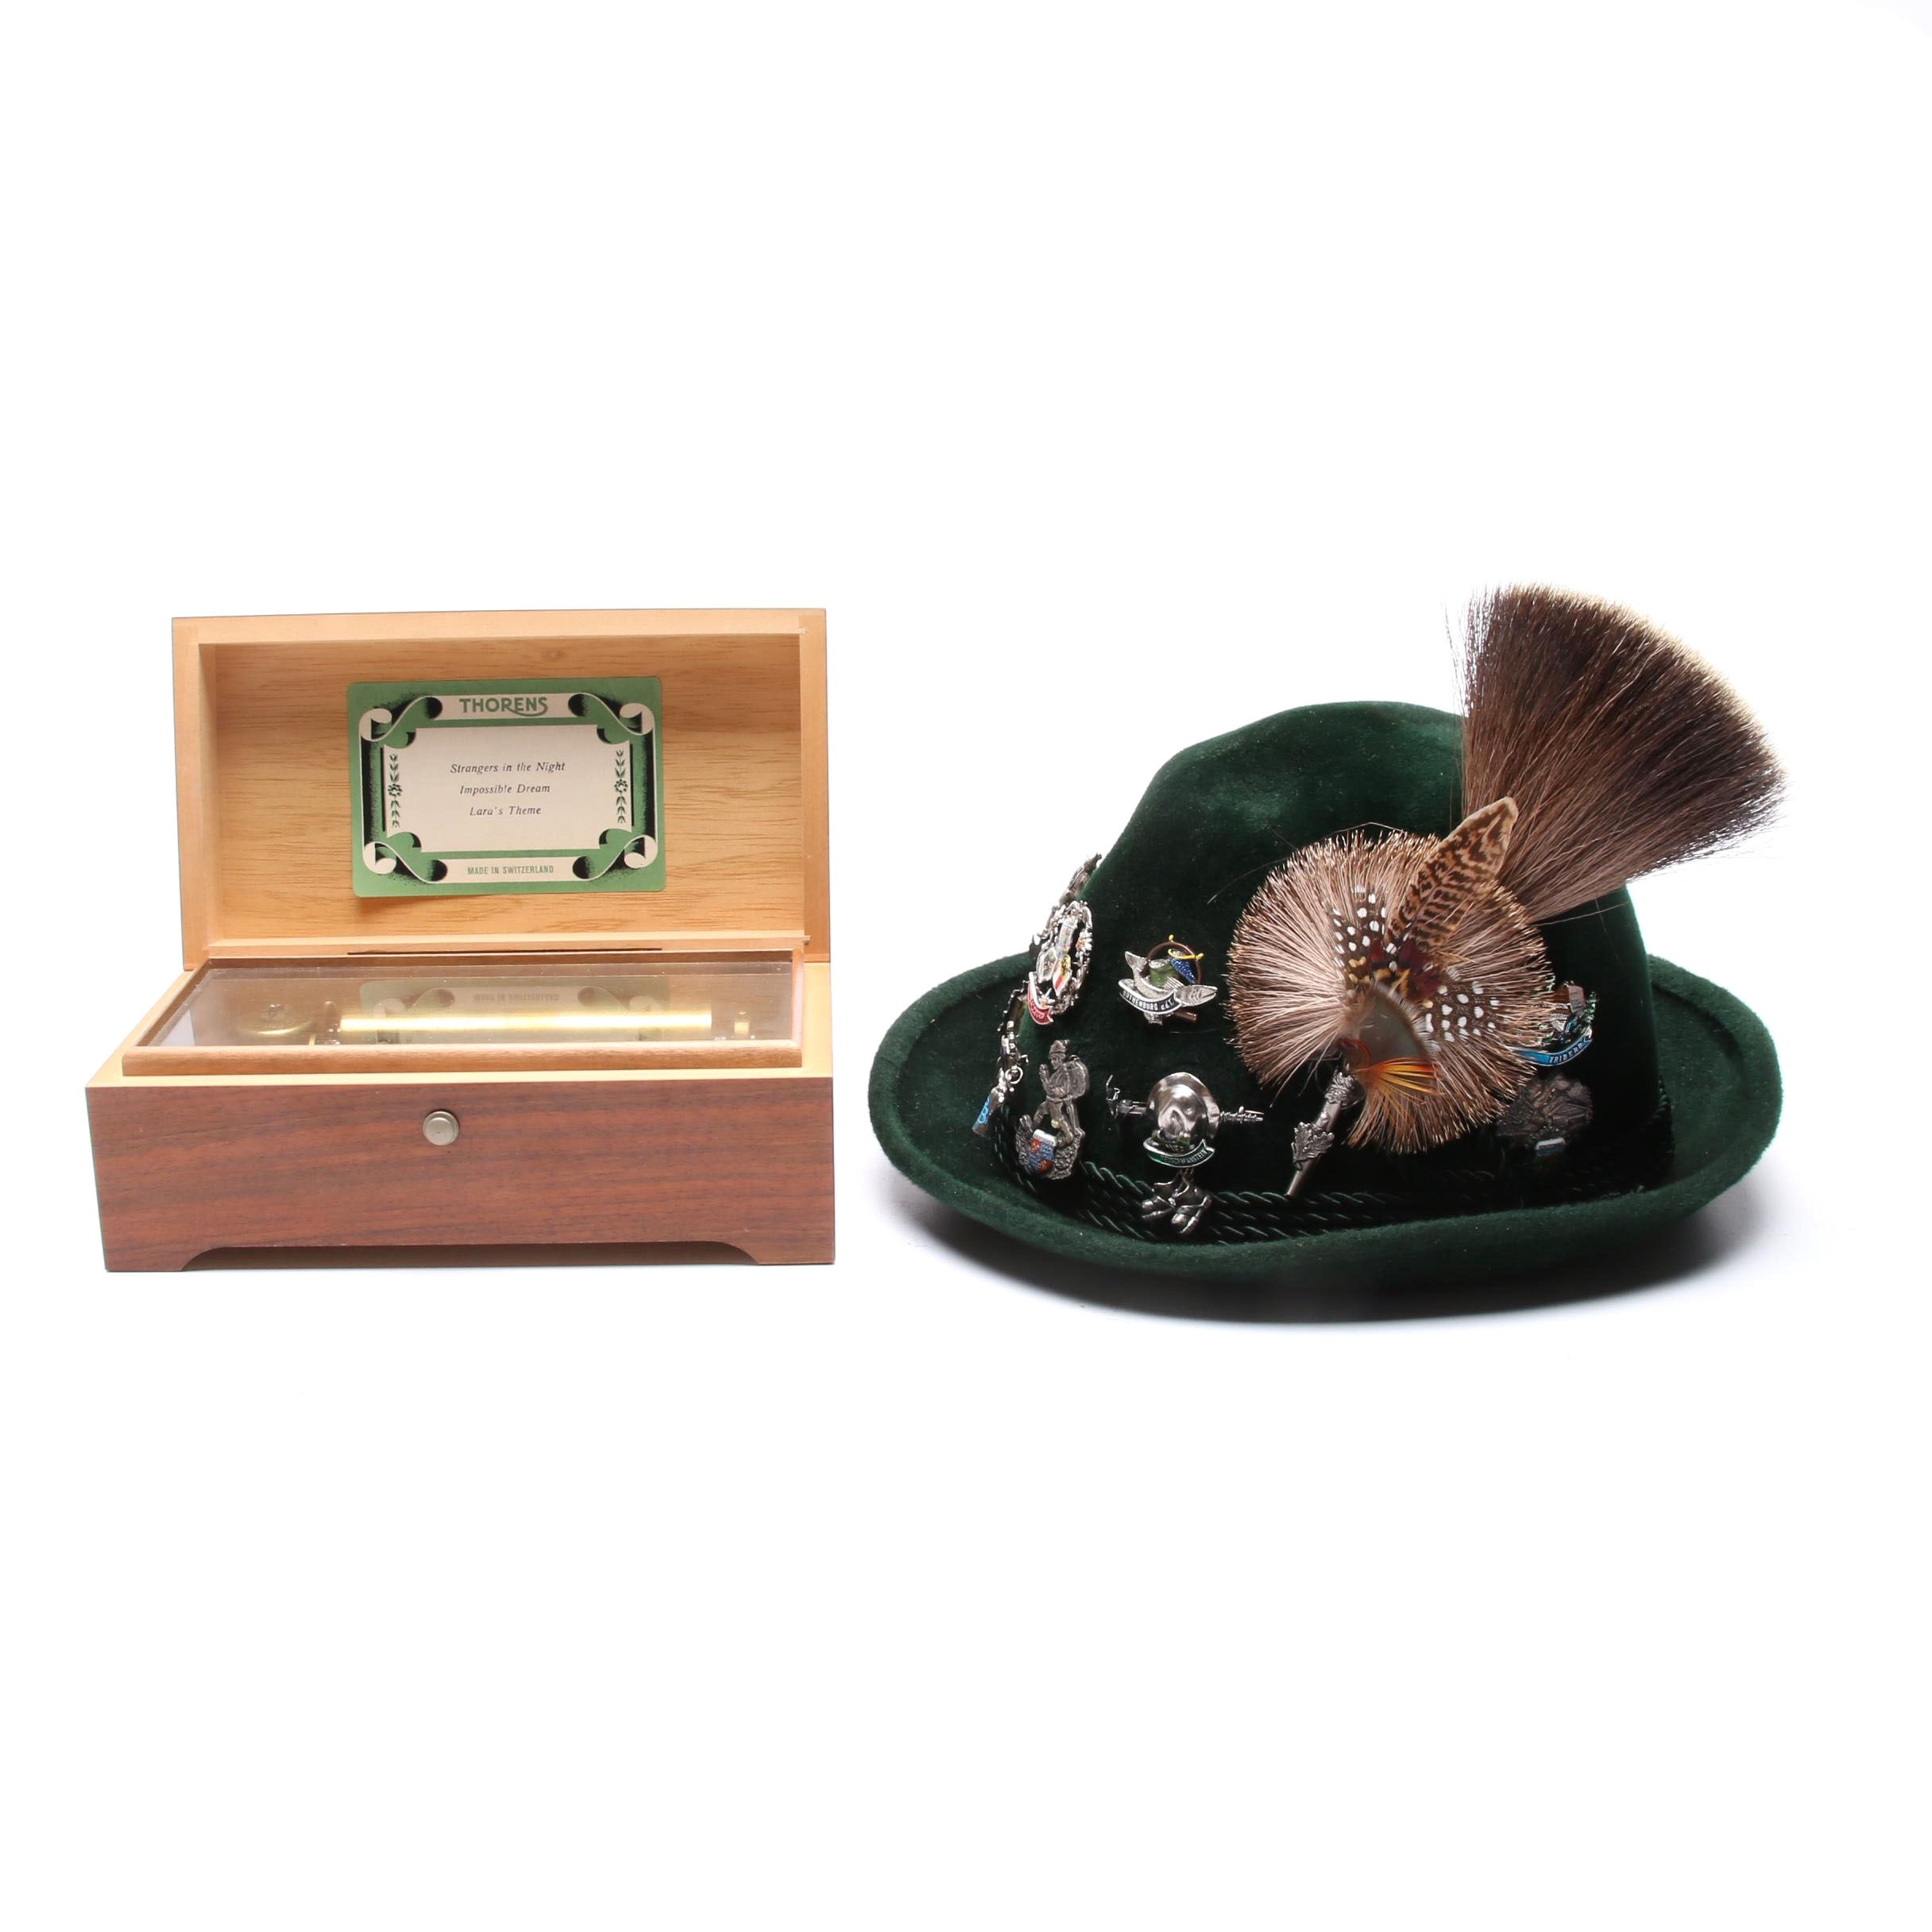 Tyrolean Hat and Thorens Swiss Music Box